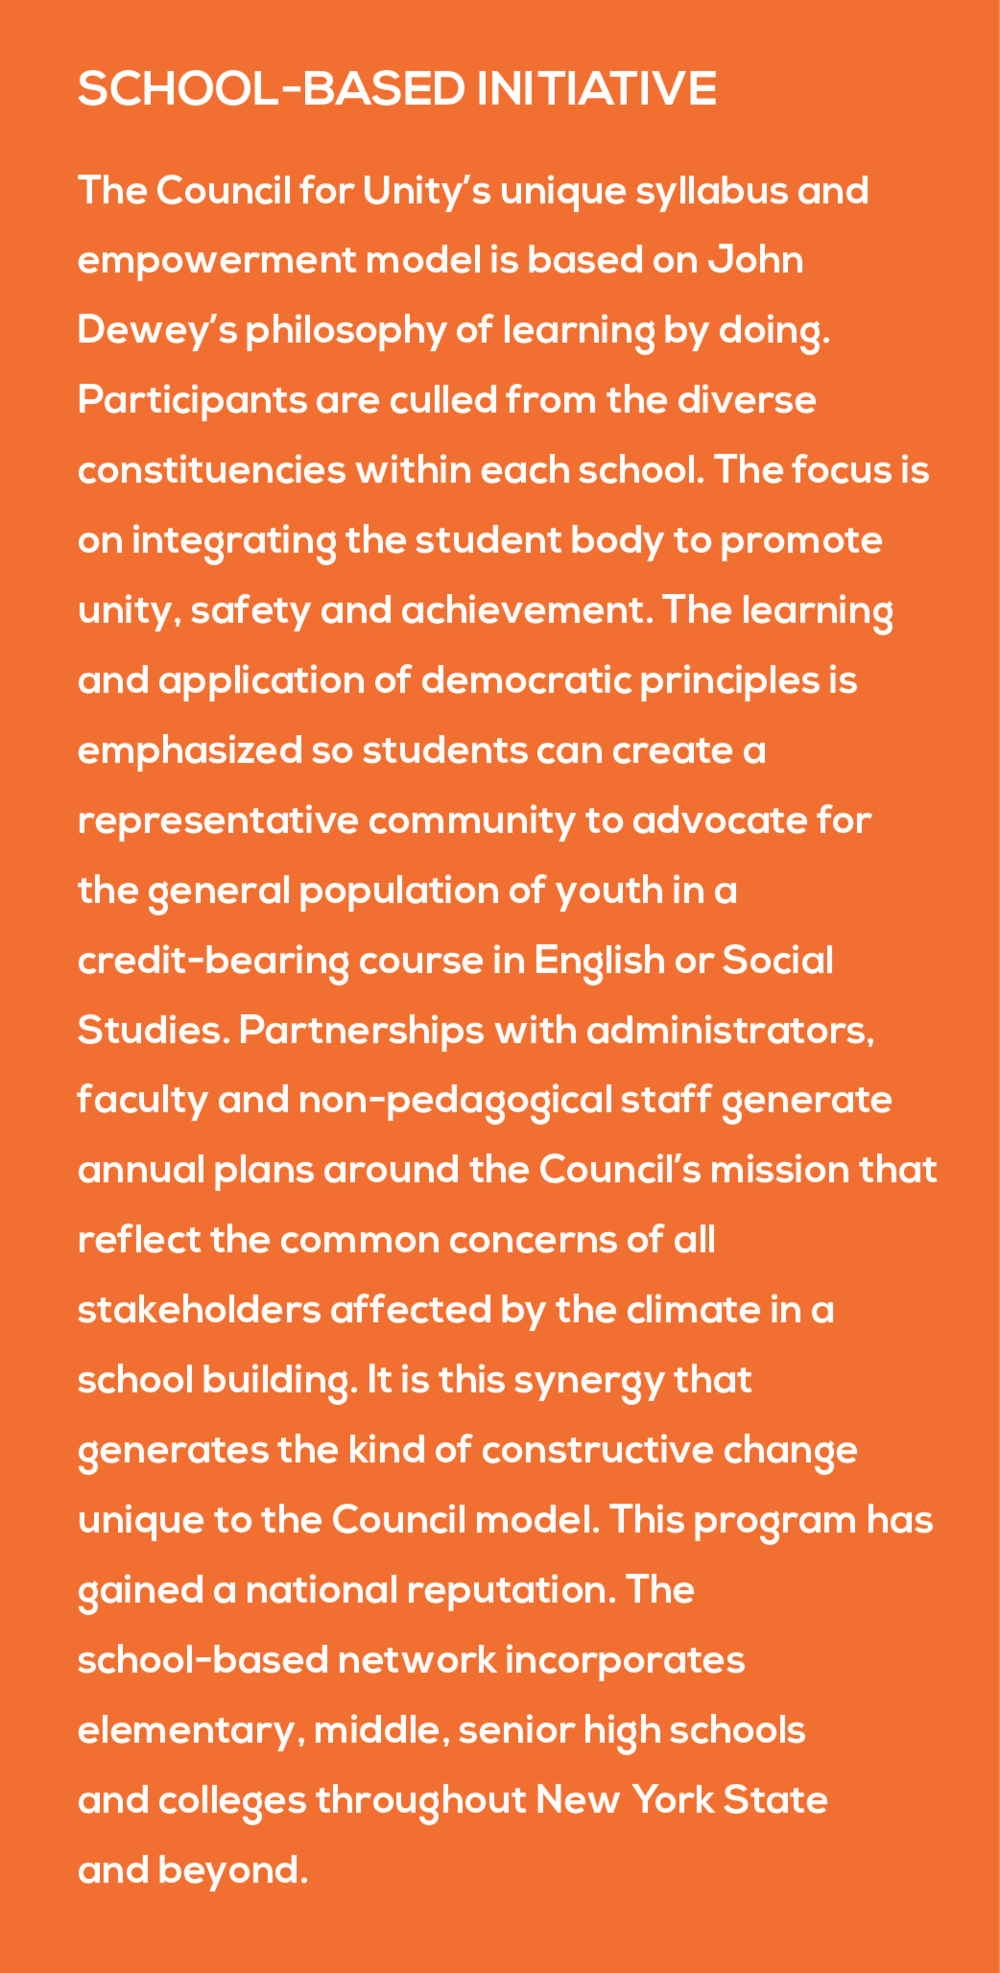 programs-and-services-school-based-initiative.png